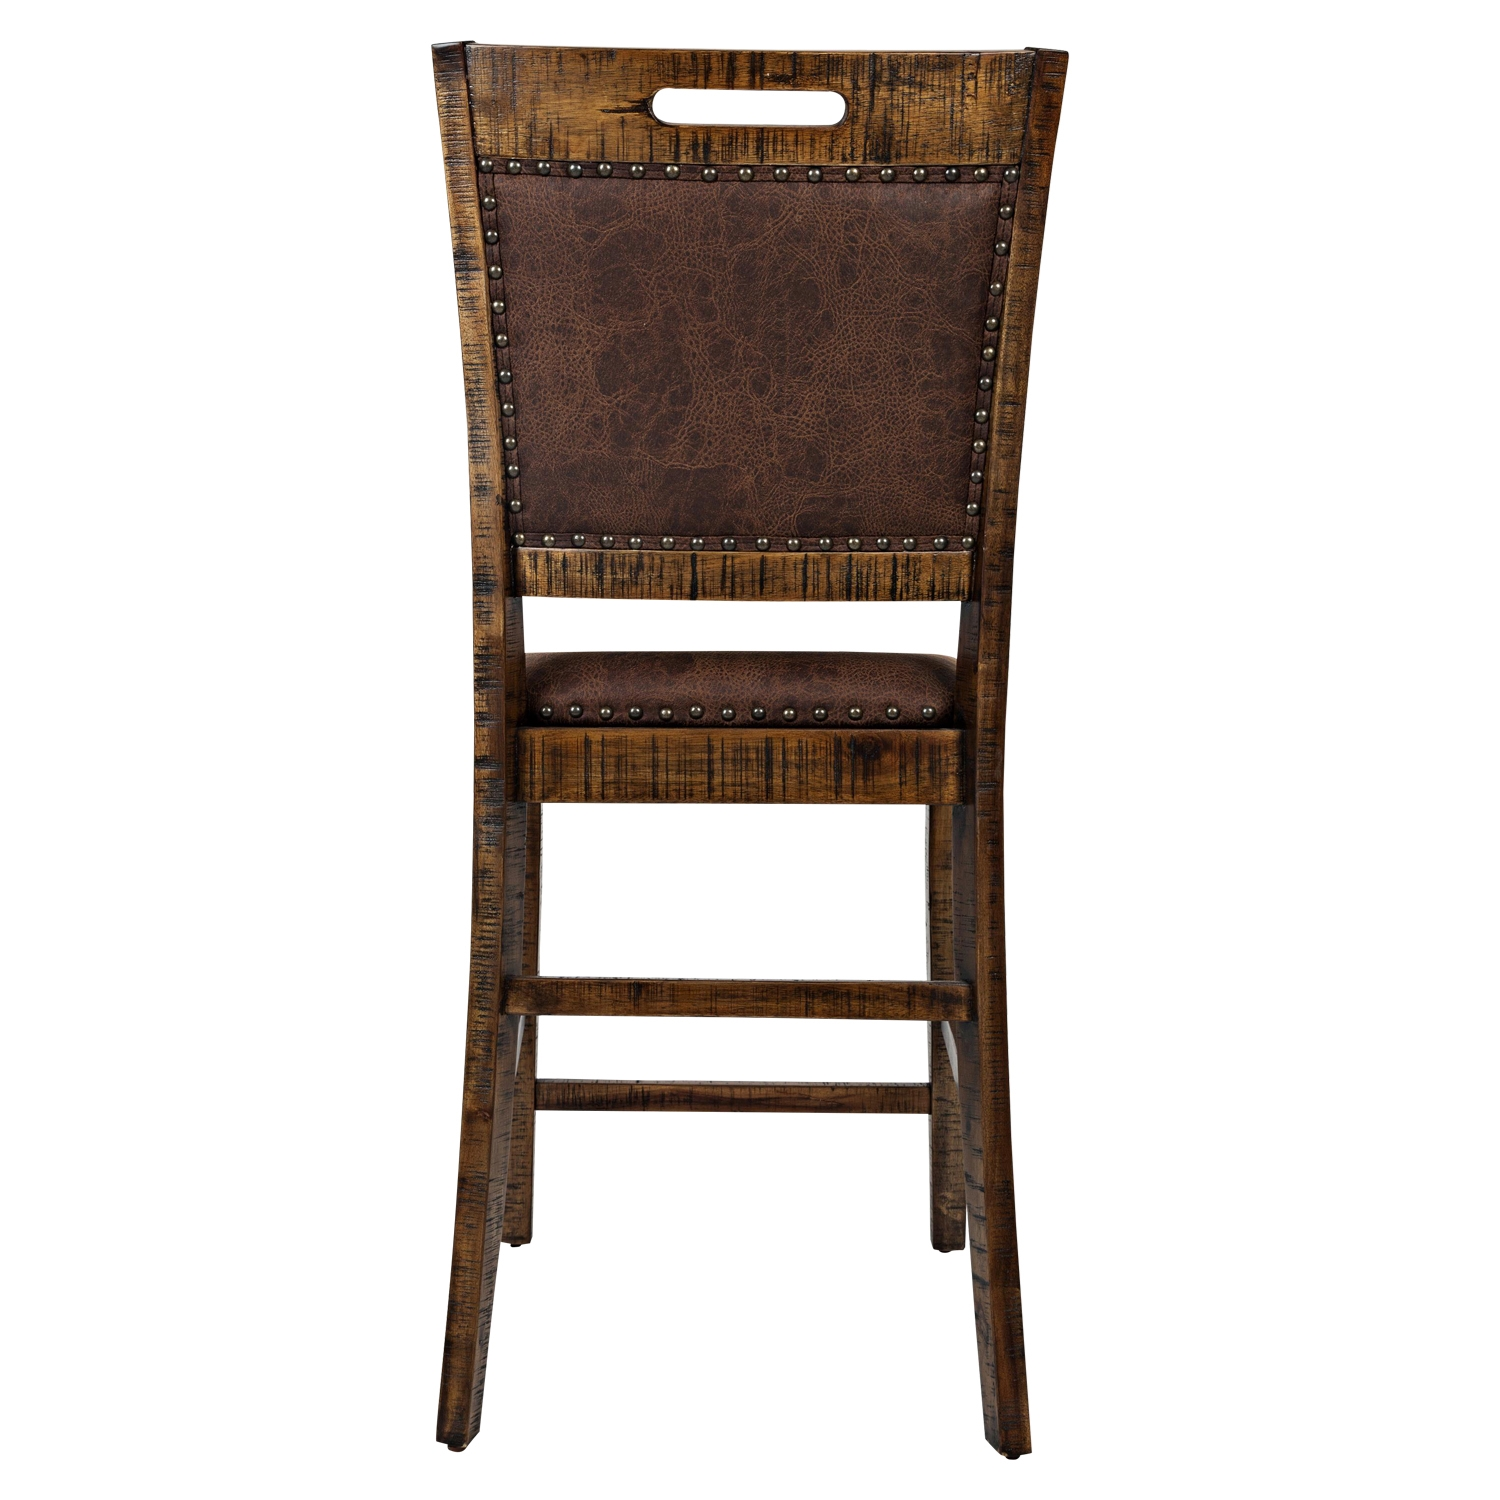 Cannon Valley Upholstered Back Counter Stool - JOFR-1511-BS380KD